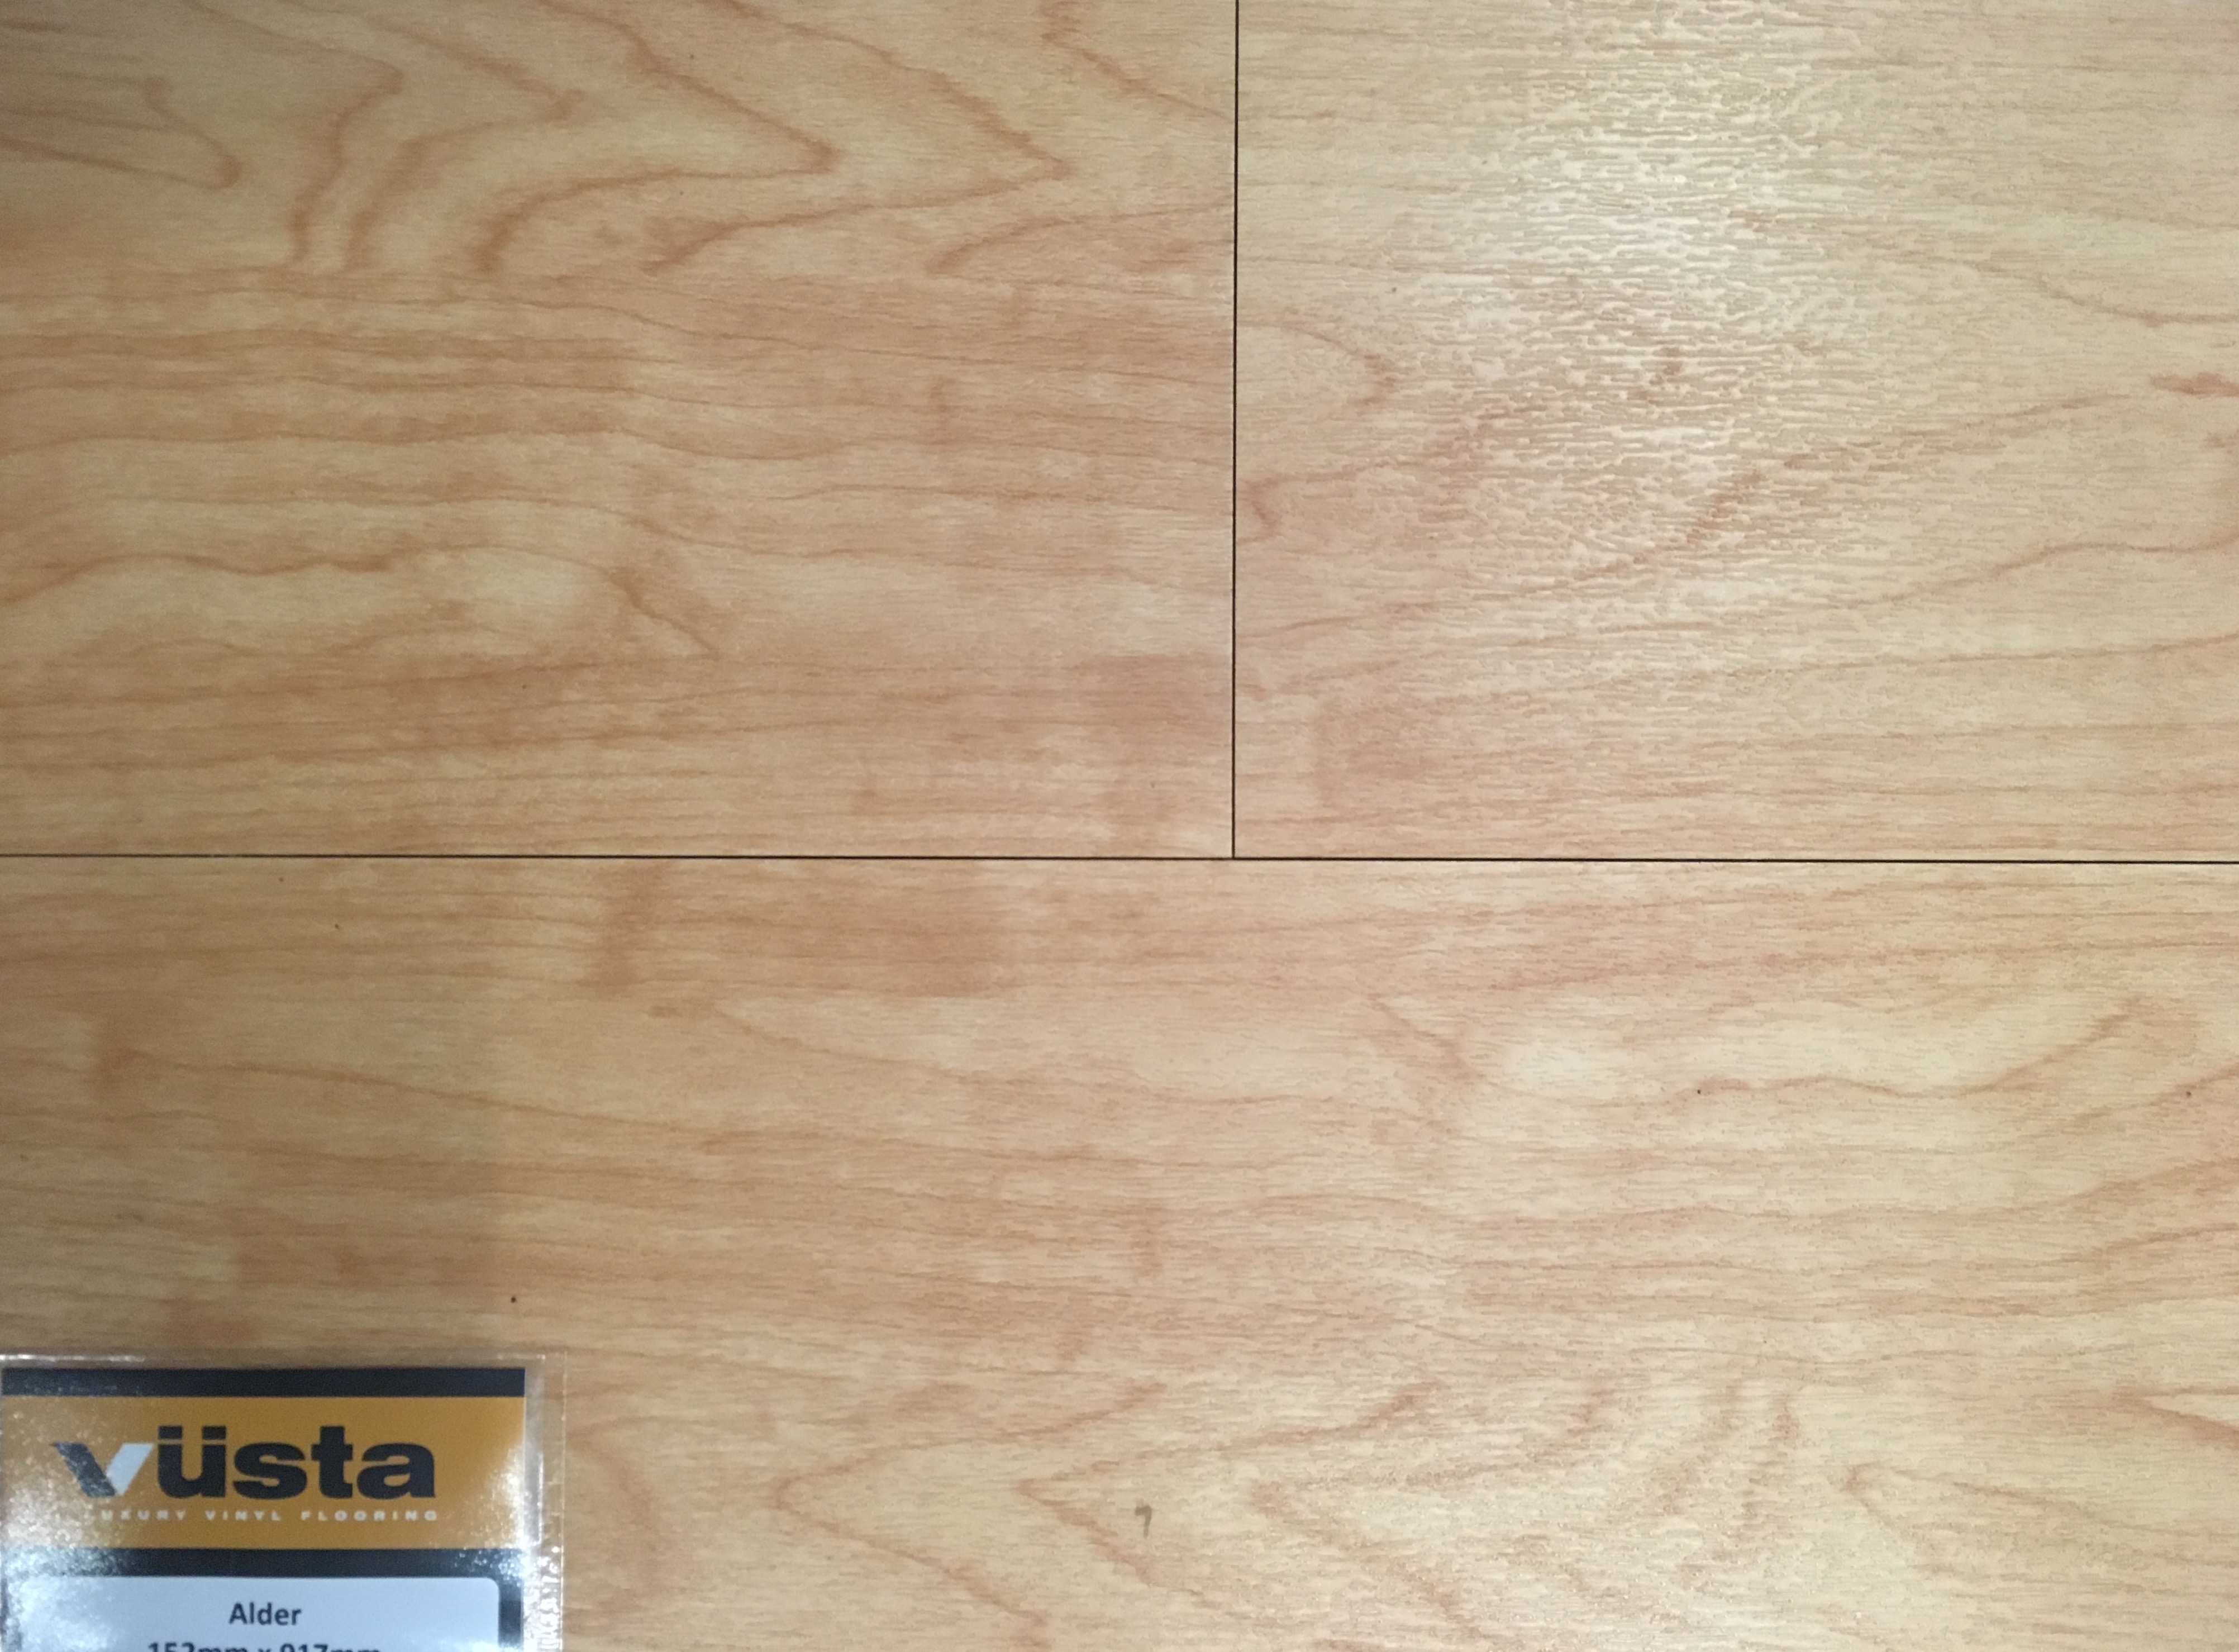 carpet-fit-wales-cynon-valley-aberdare-south-aberaman-experienced-skilled-great-customer-service-flooring-OFFER-vusta-alder